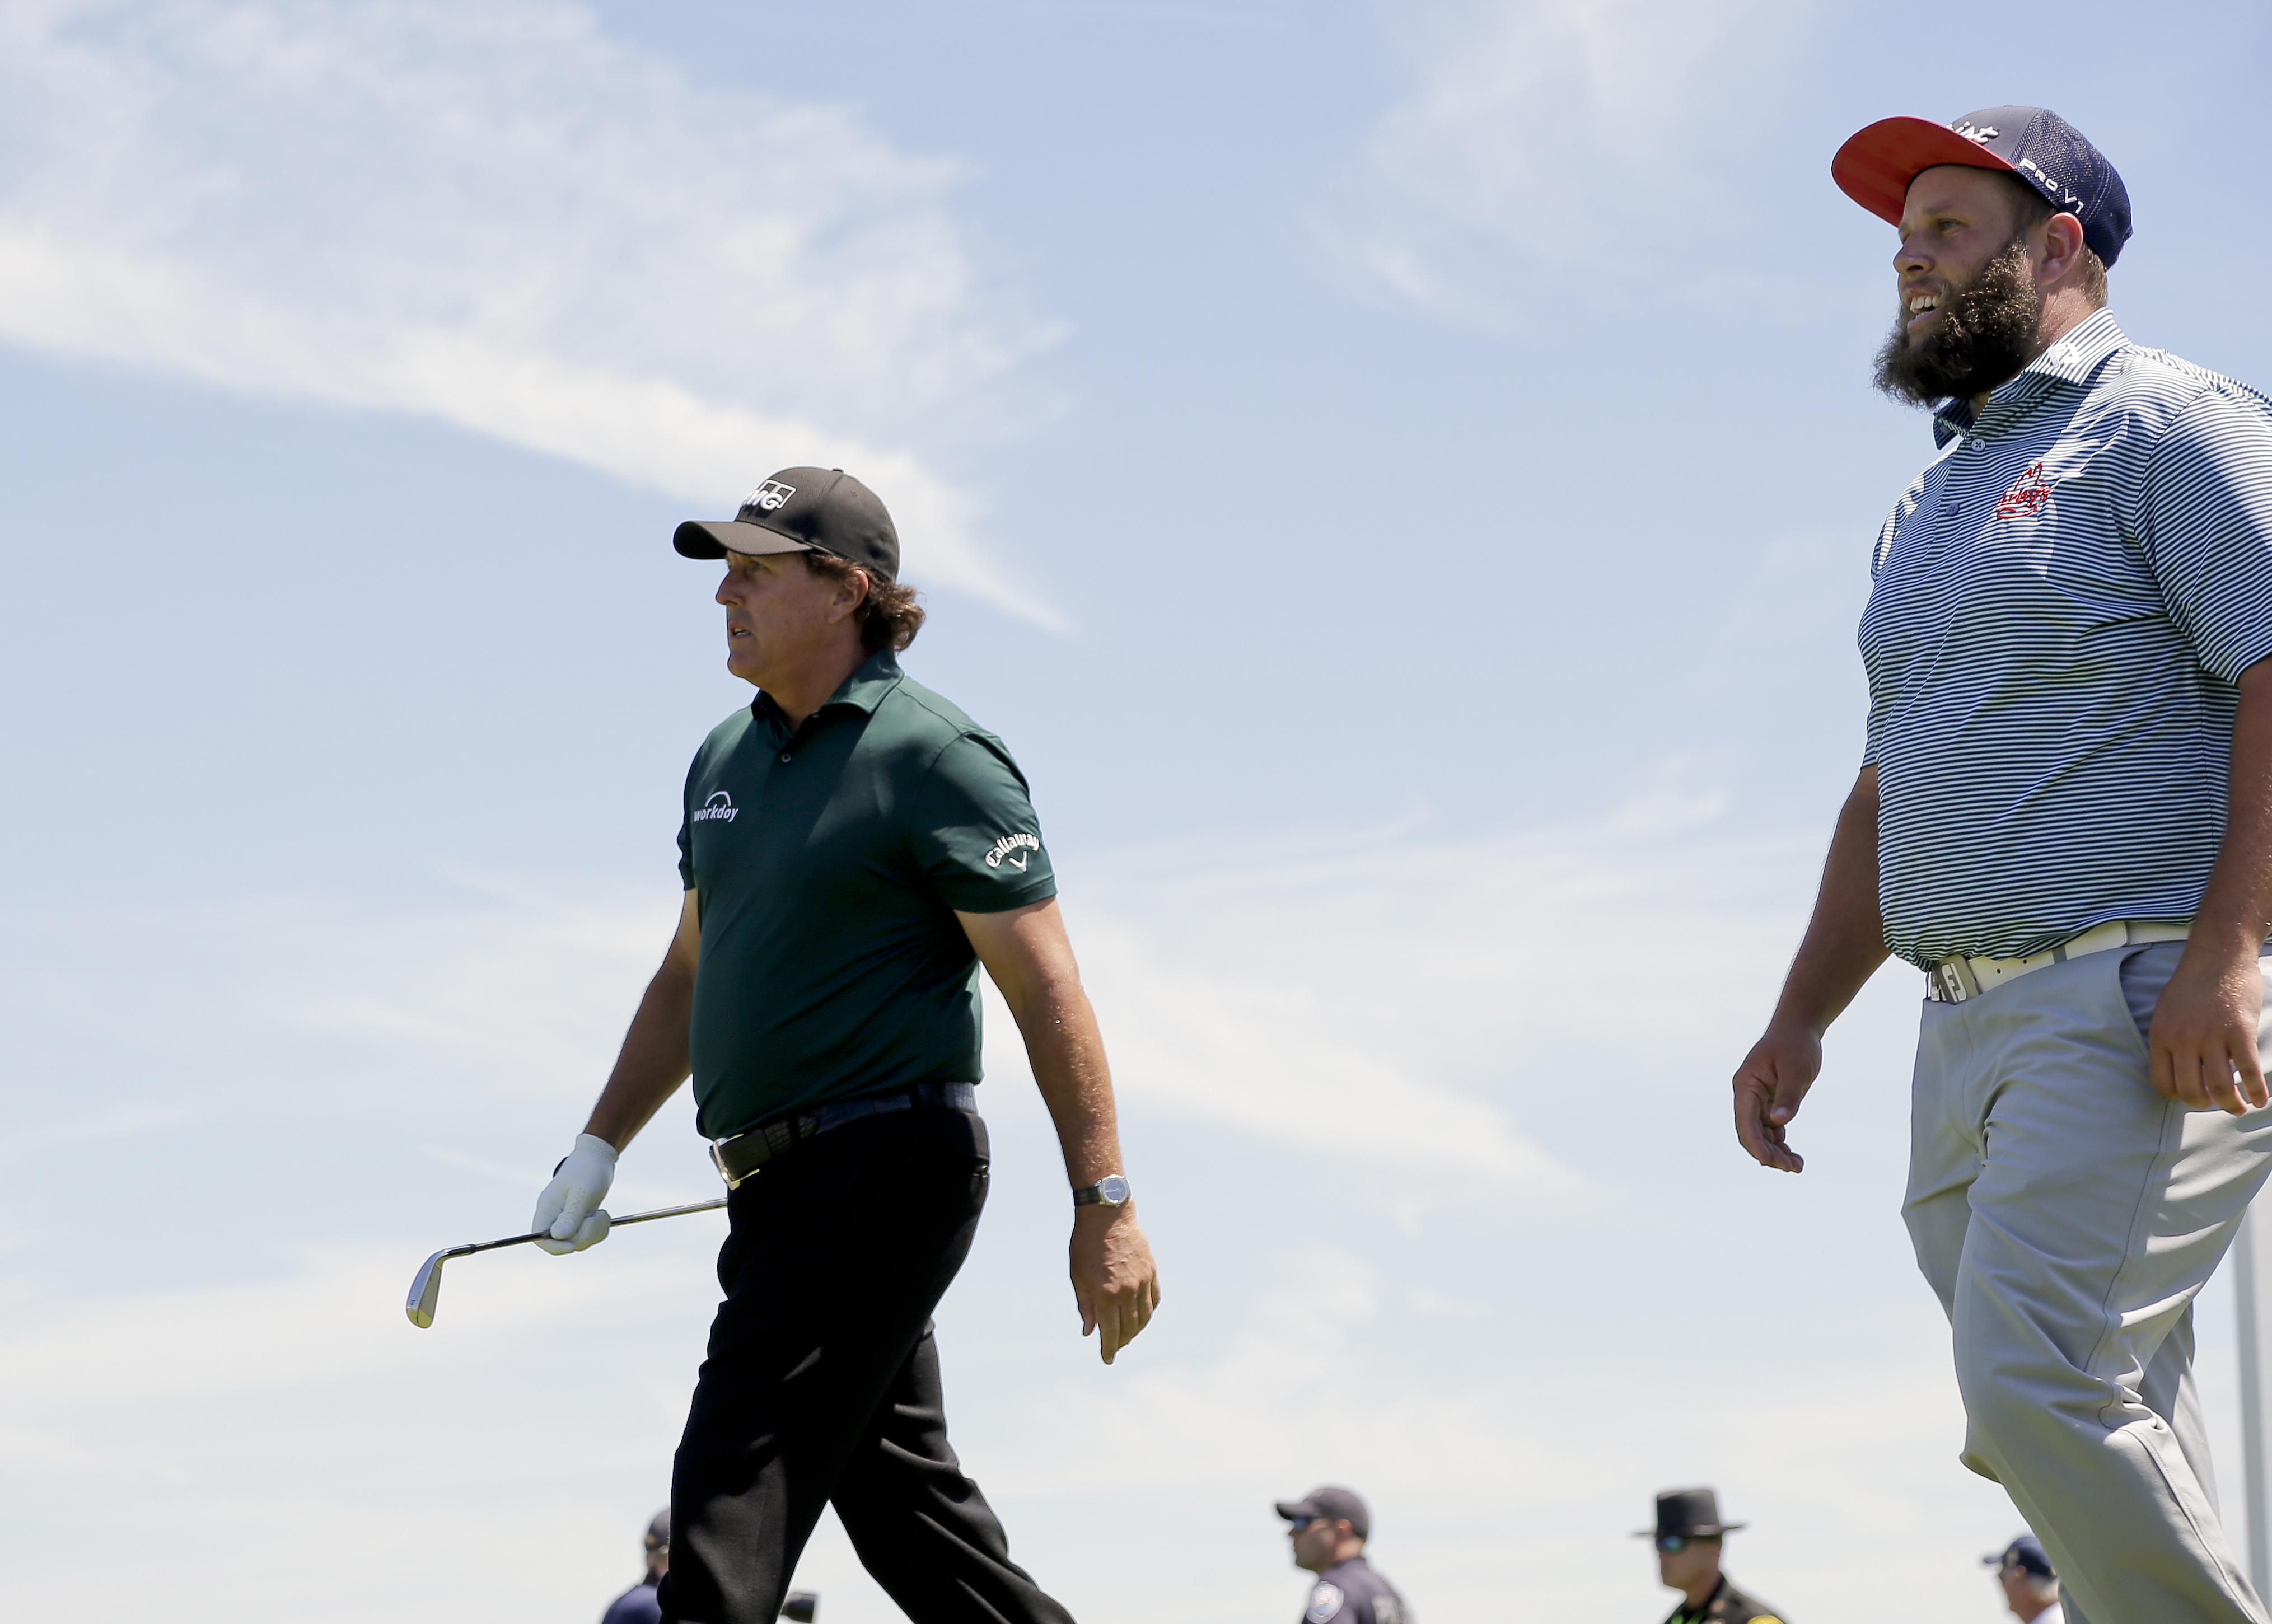 Phil should have been disqualified from the U.S. Open for breaking the rules to gain an advantage.